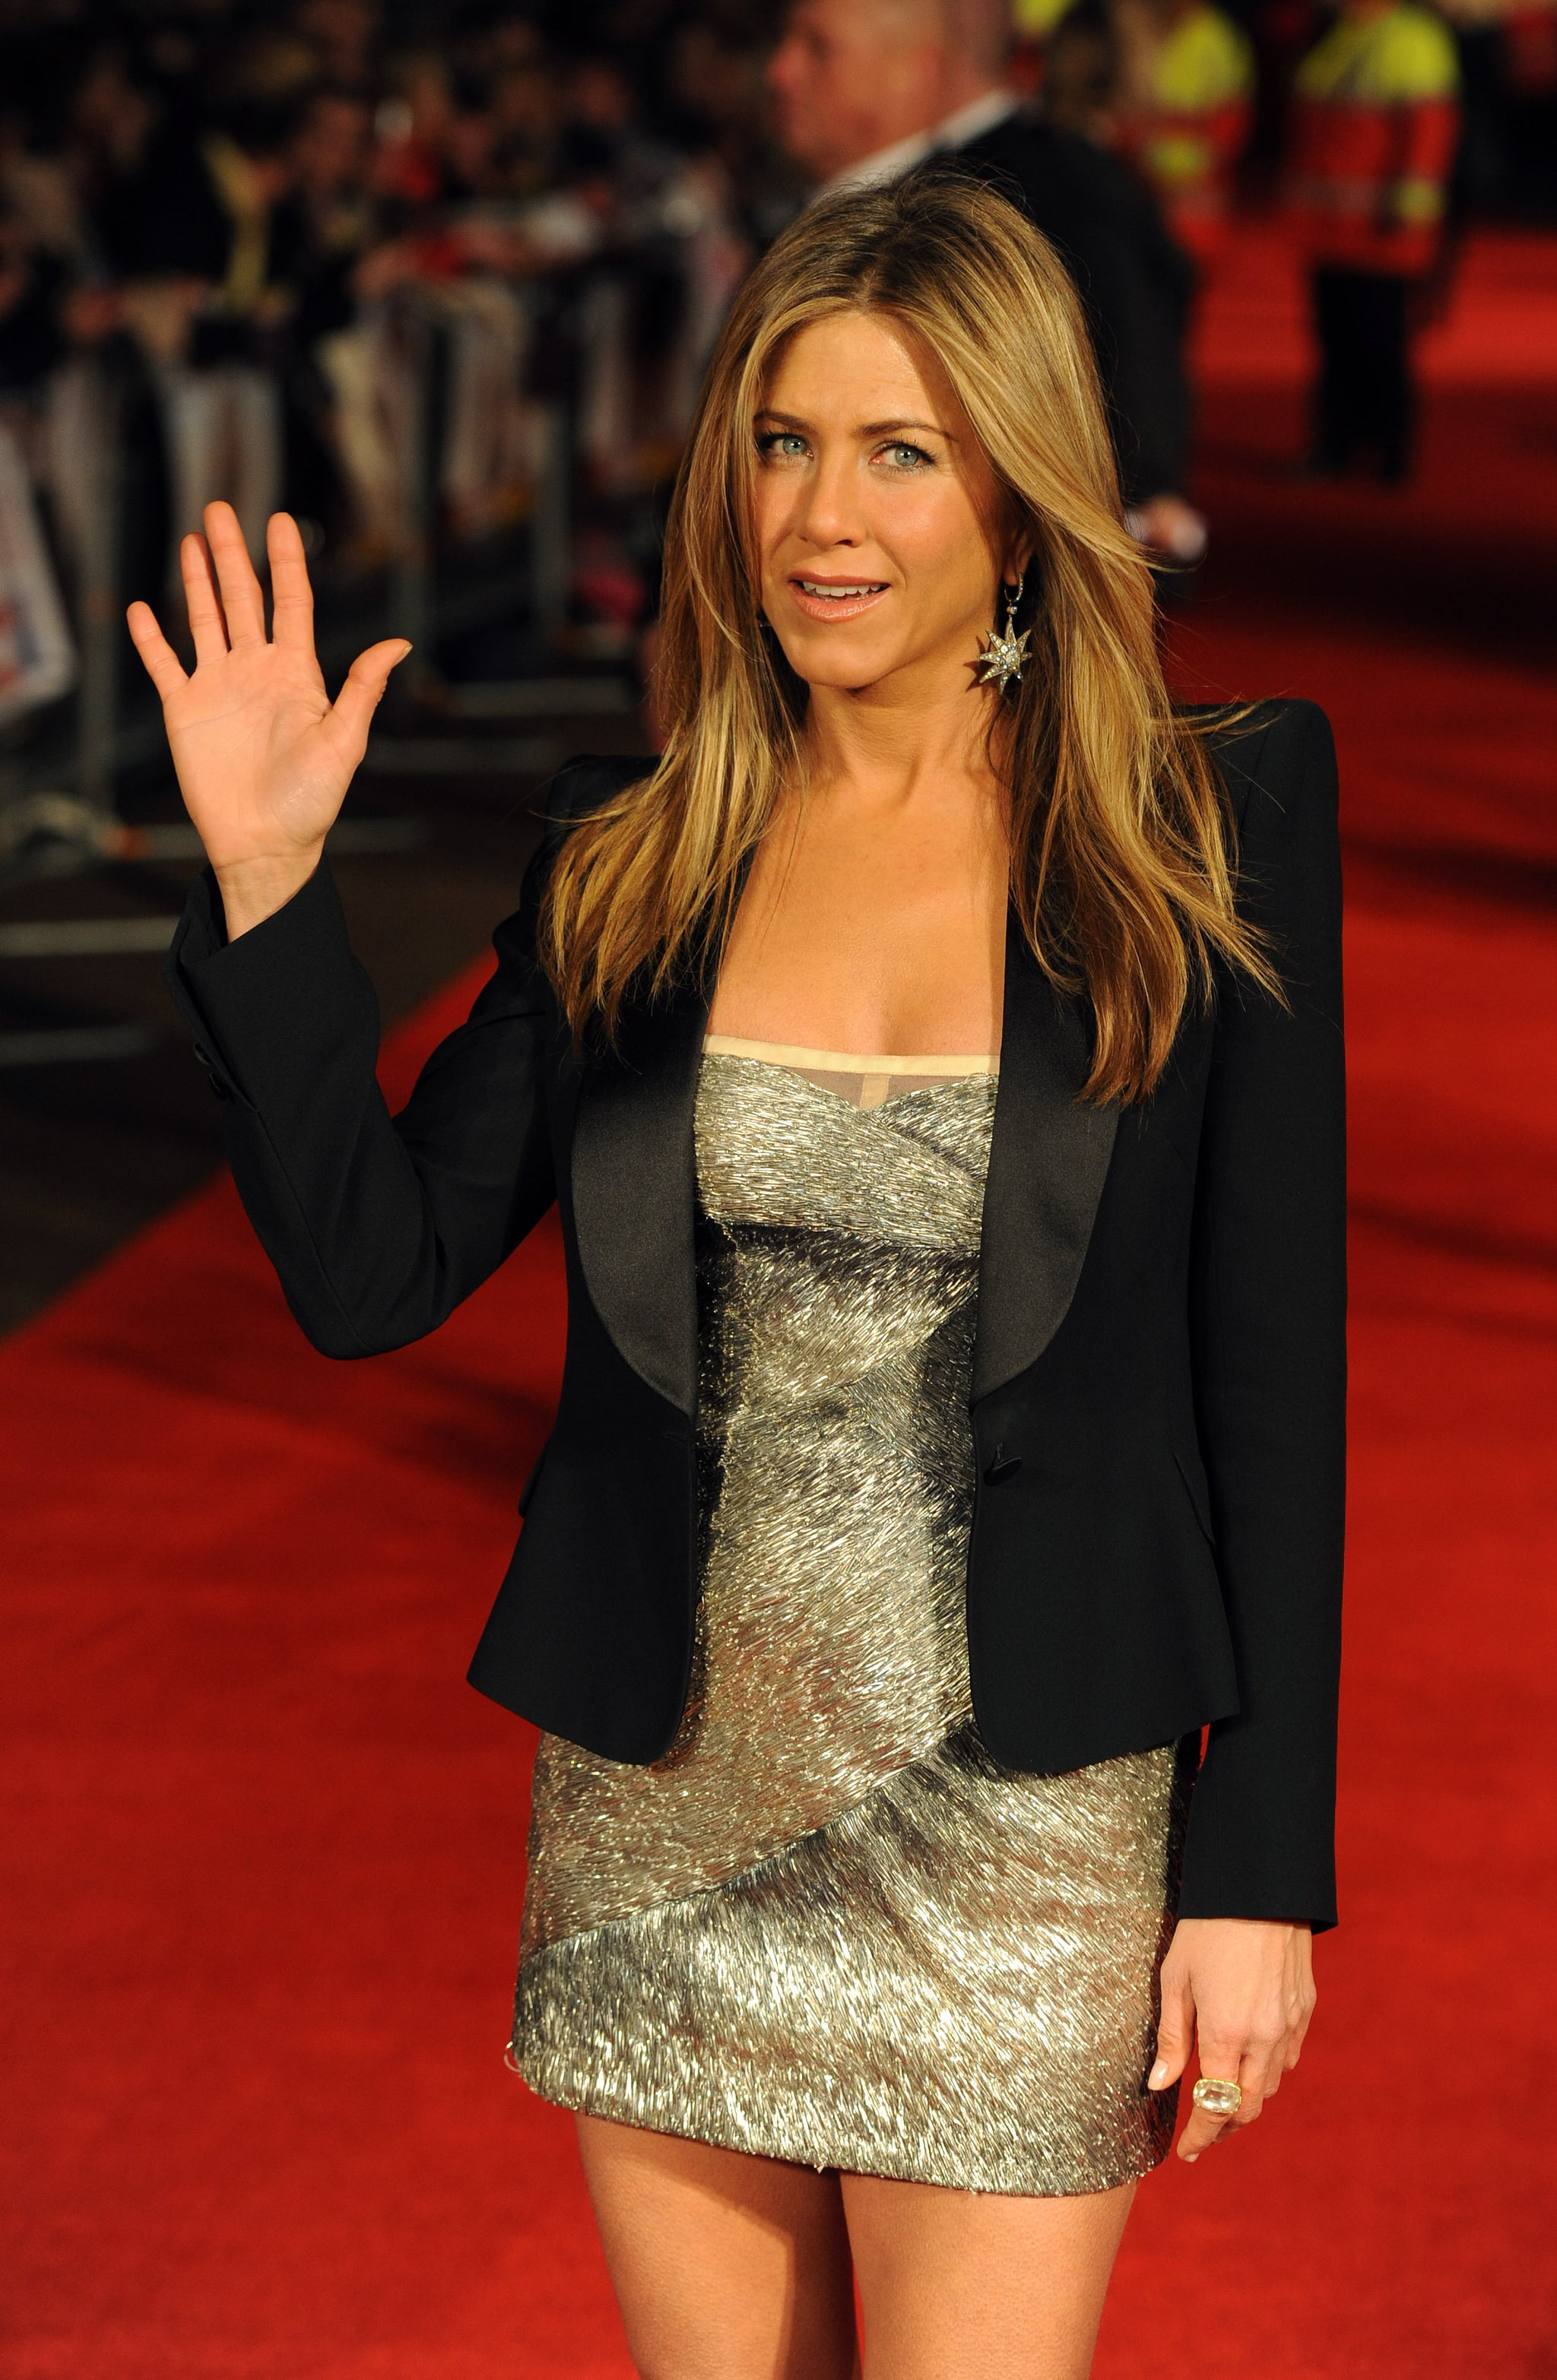 Airport Kia London >> Photos of Jennifer Aniston And Gerard Butler at The London Premiere of The Bounty Hunter ...